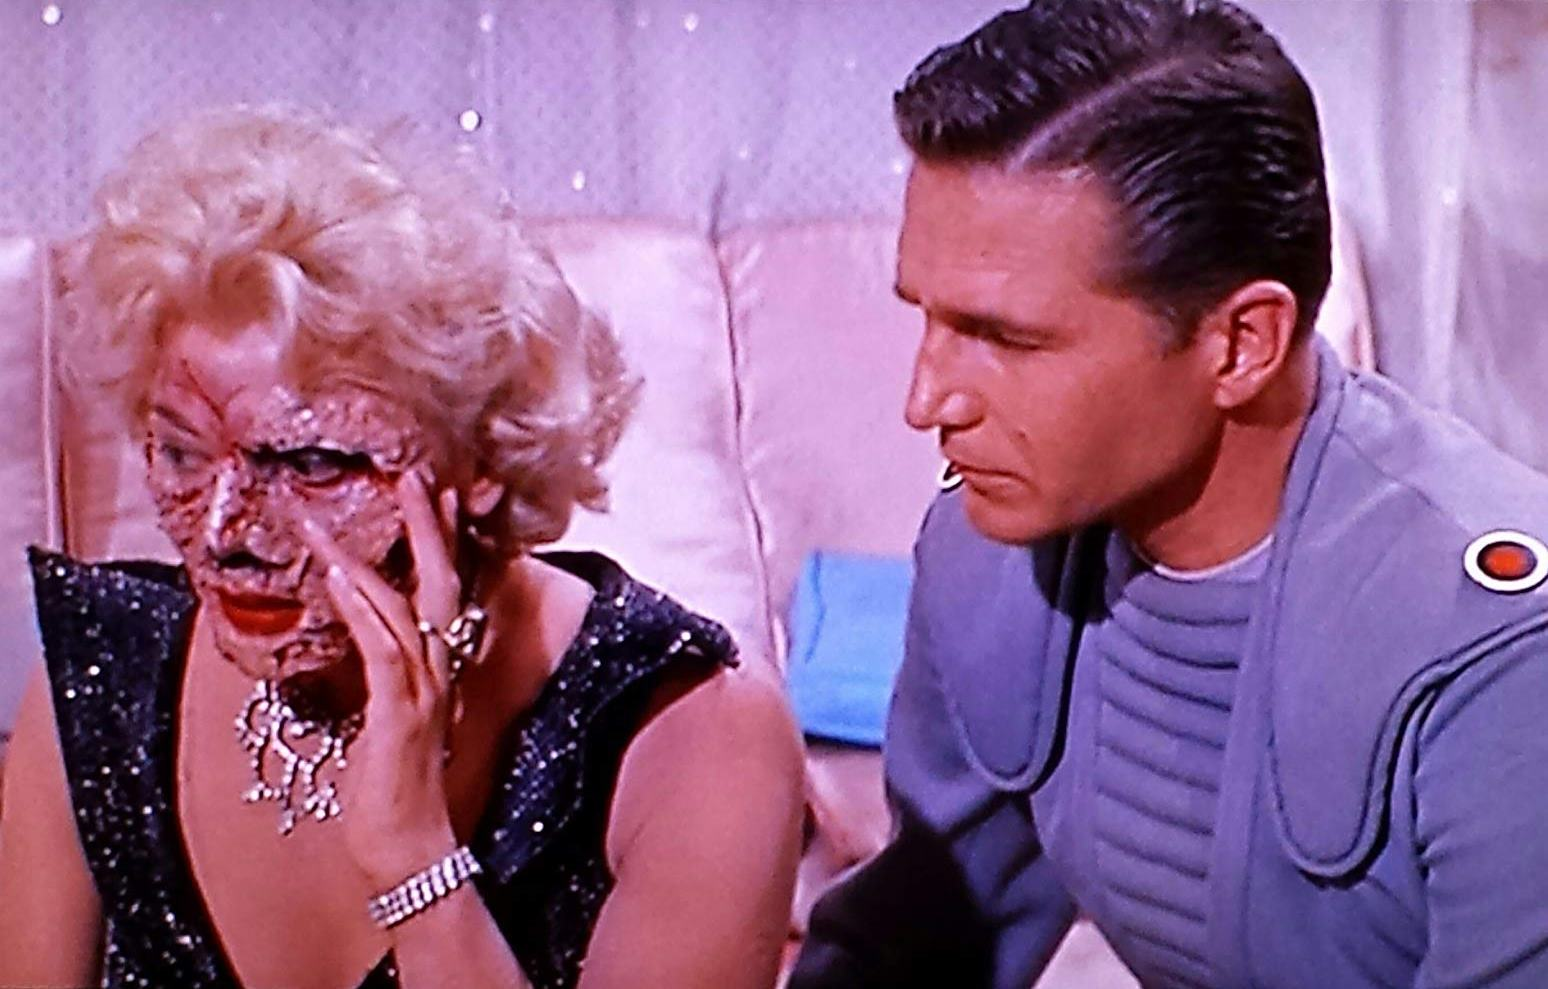 Captain Eric Fleming and Laurie Mitchell as the disfigured Queen Yllana in Queen of Outer Space (1958)